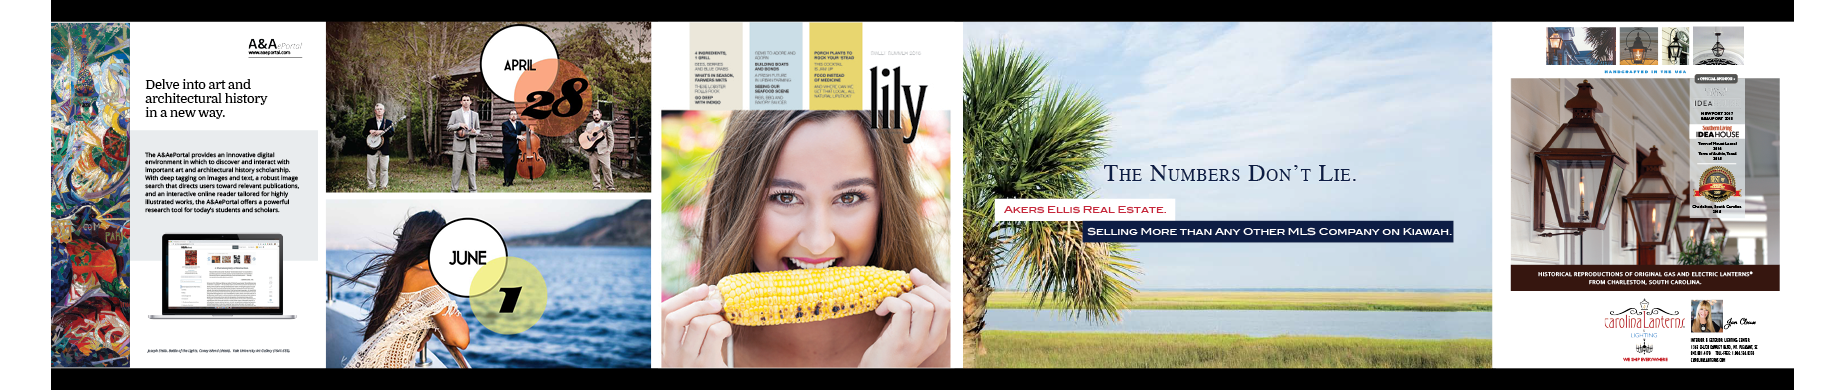 caitilin-mcphillips-web-and-graphic-design-studio-charleston-sc-squarespace-4.png